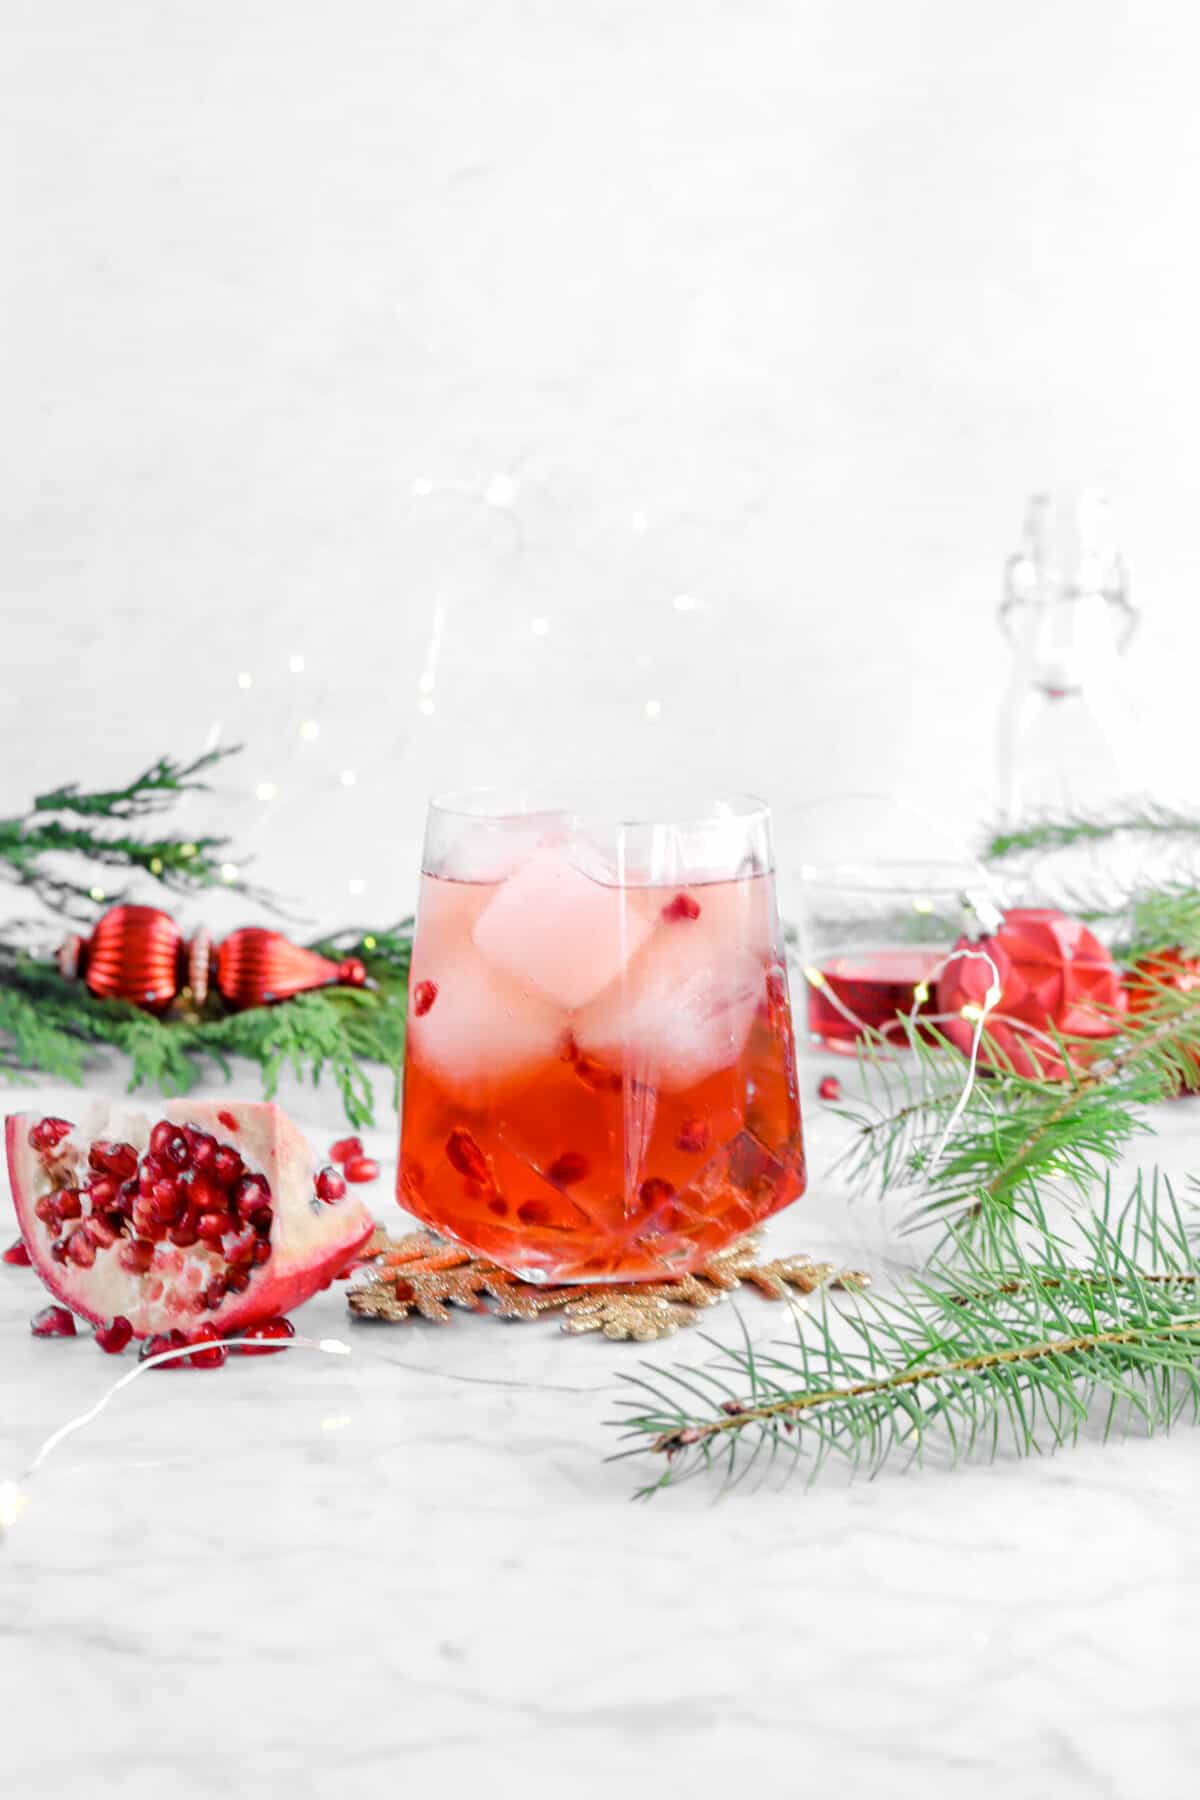 Pomegranate moscow mule with greenery, wedge of pomegranate, and fairy lights